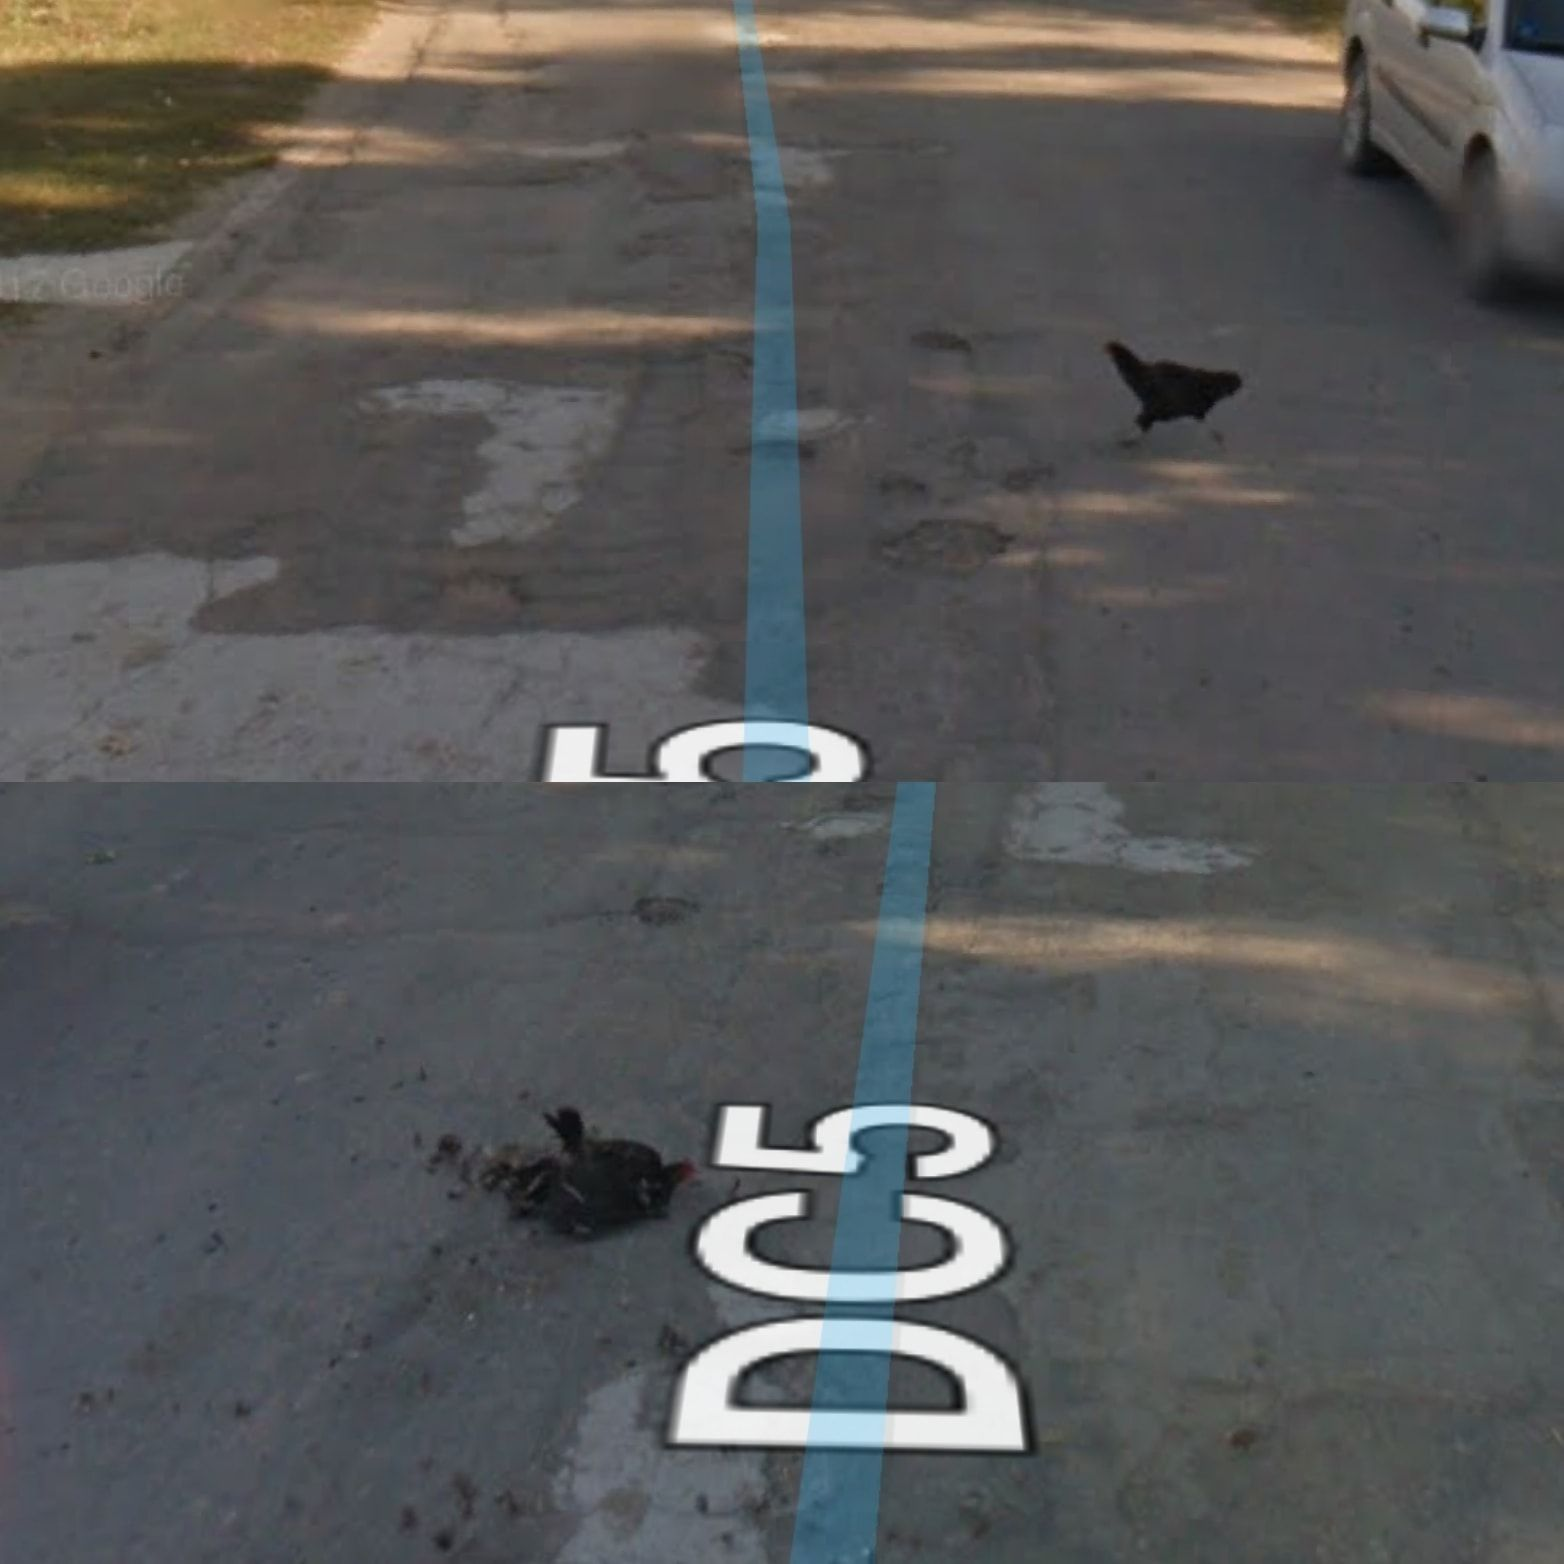 Google street view car ran over a chicken who was trying to cross the road